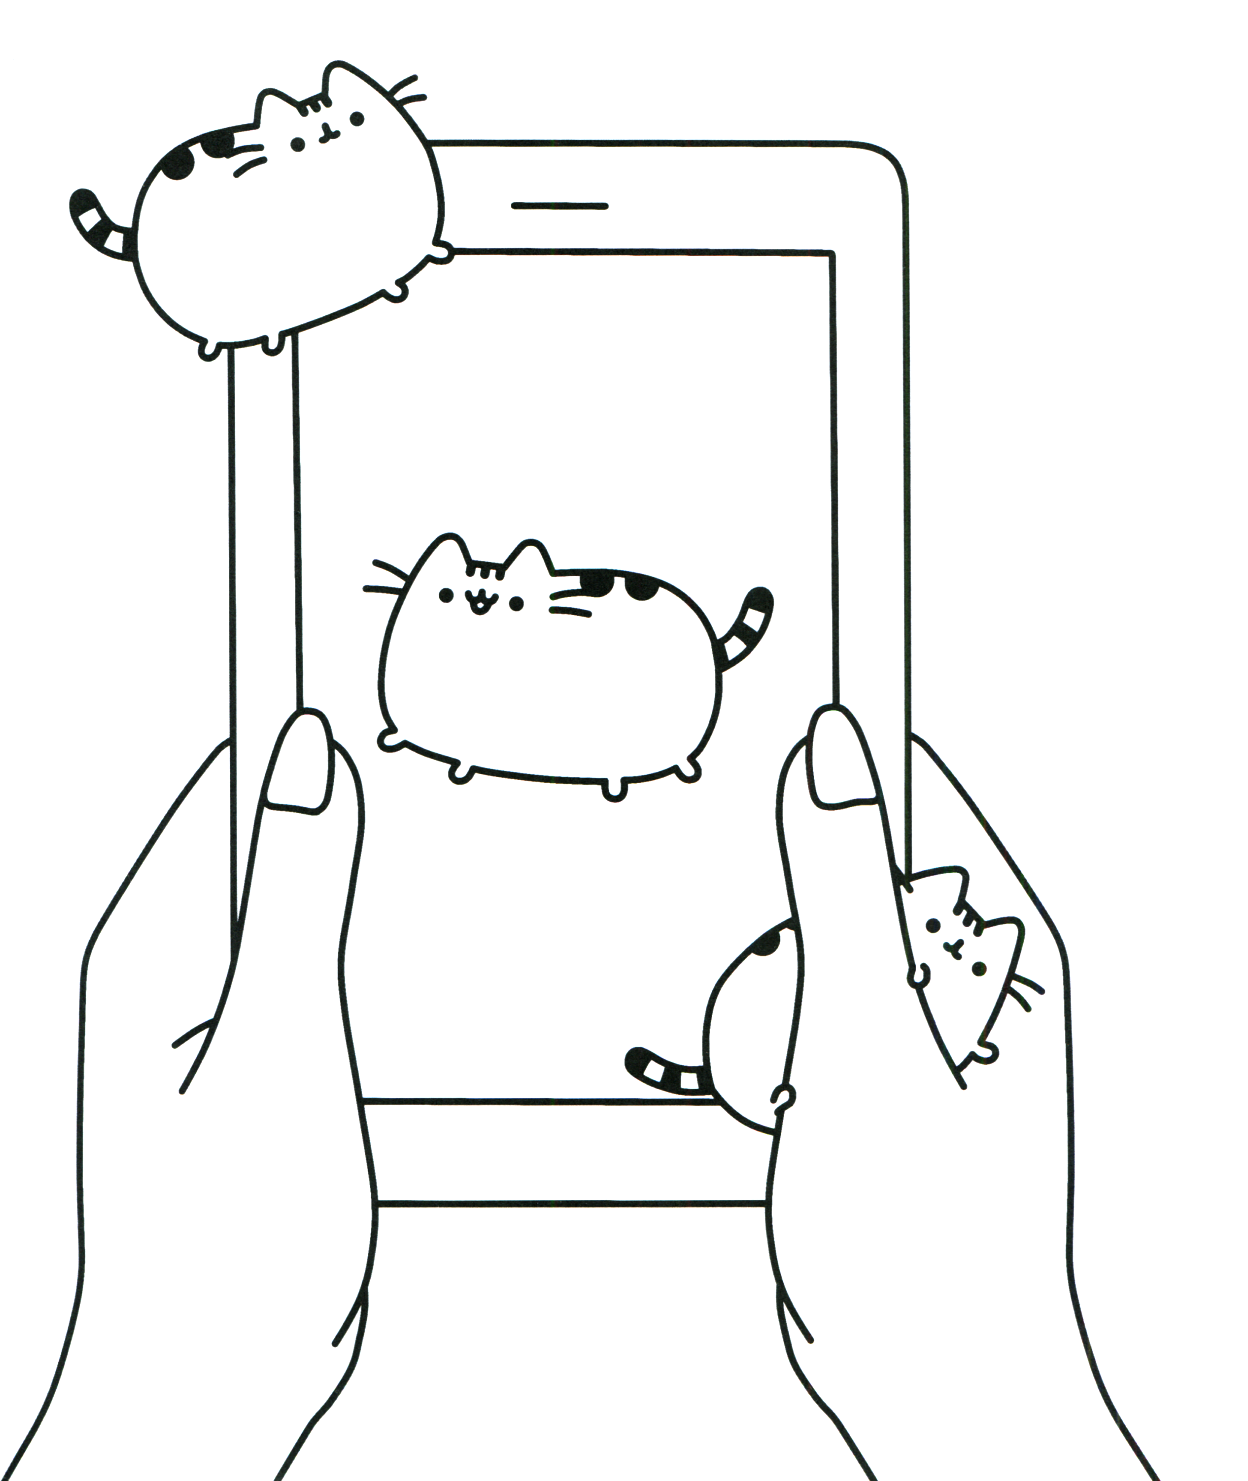 Coloring Rocks Pusheen Coloring Pages Cat Coloring Page Cute Coloring Pages